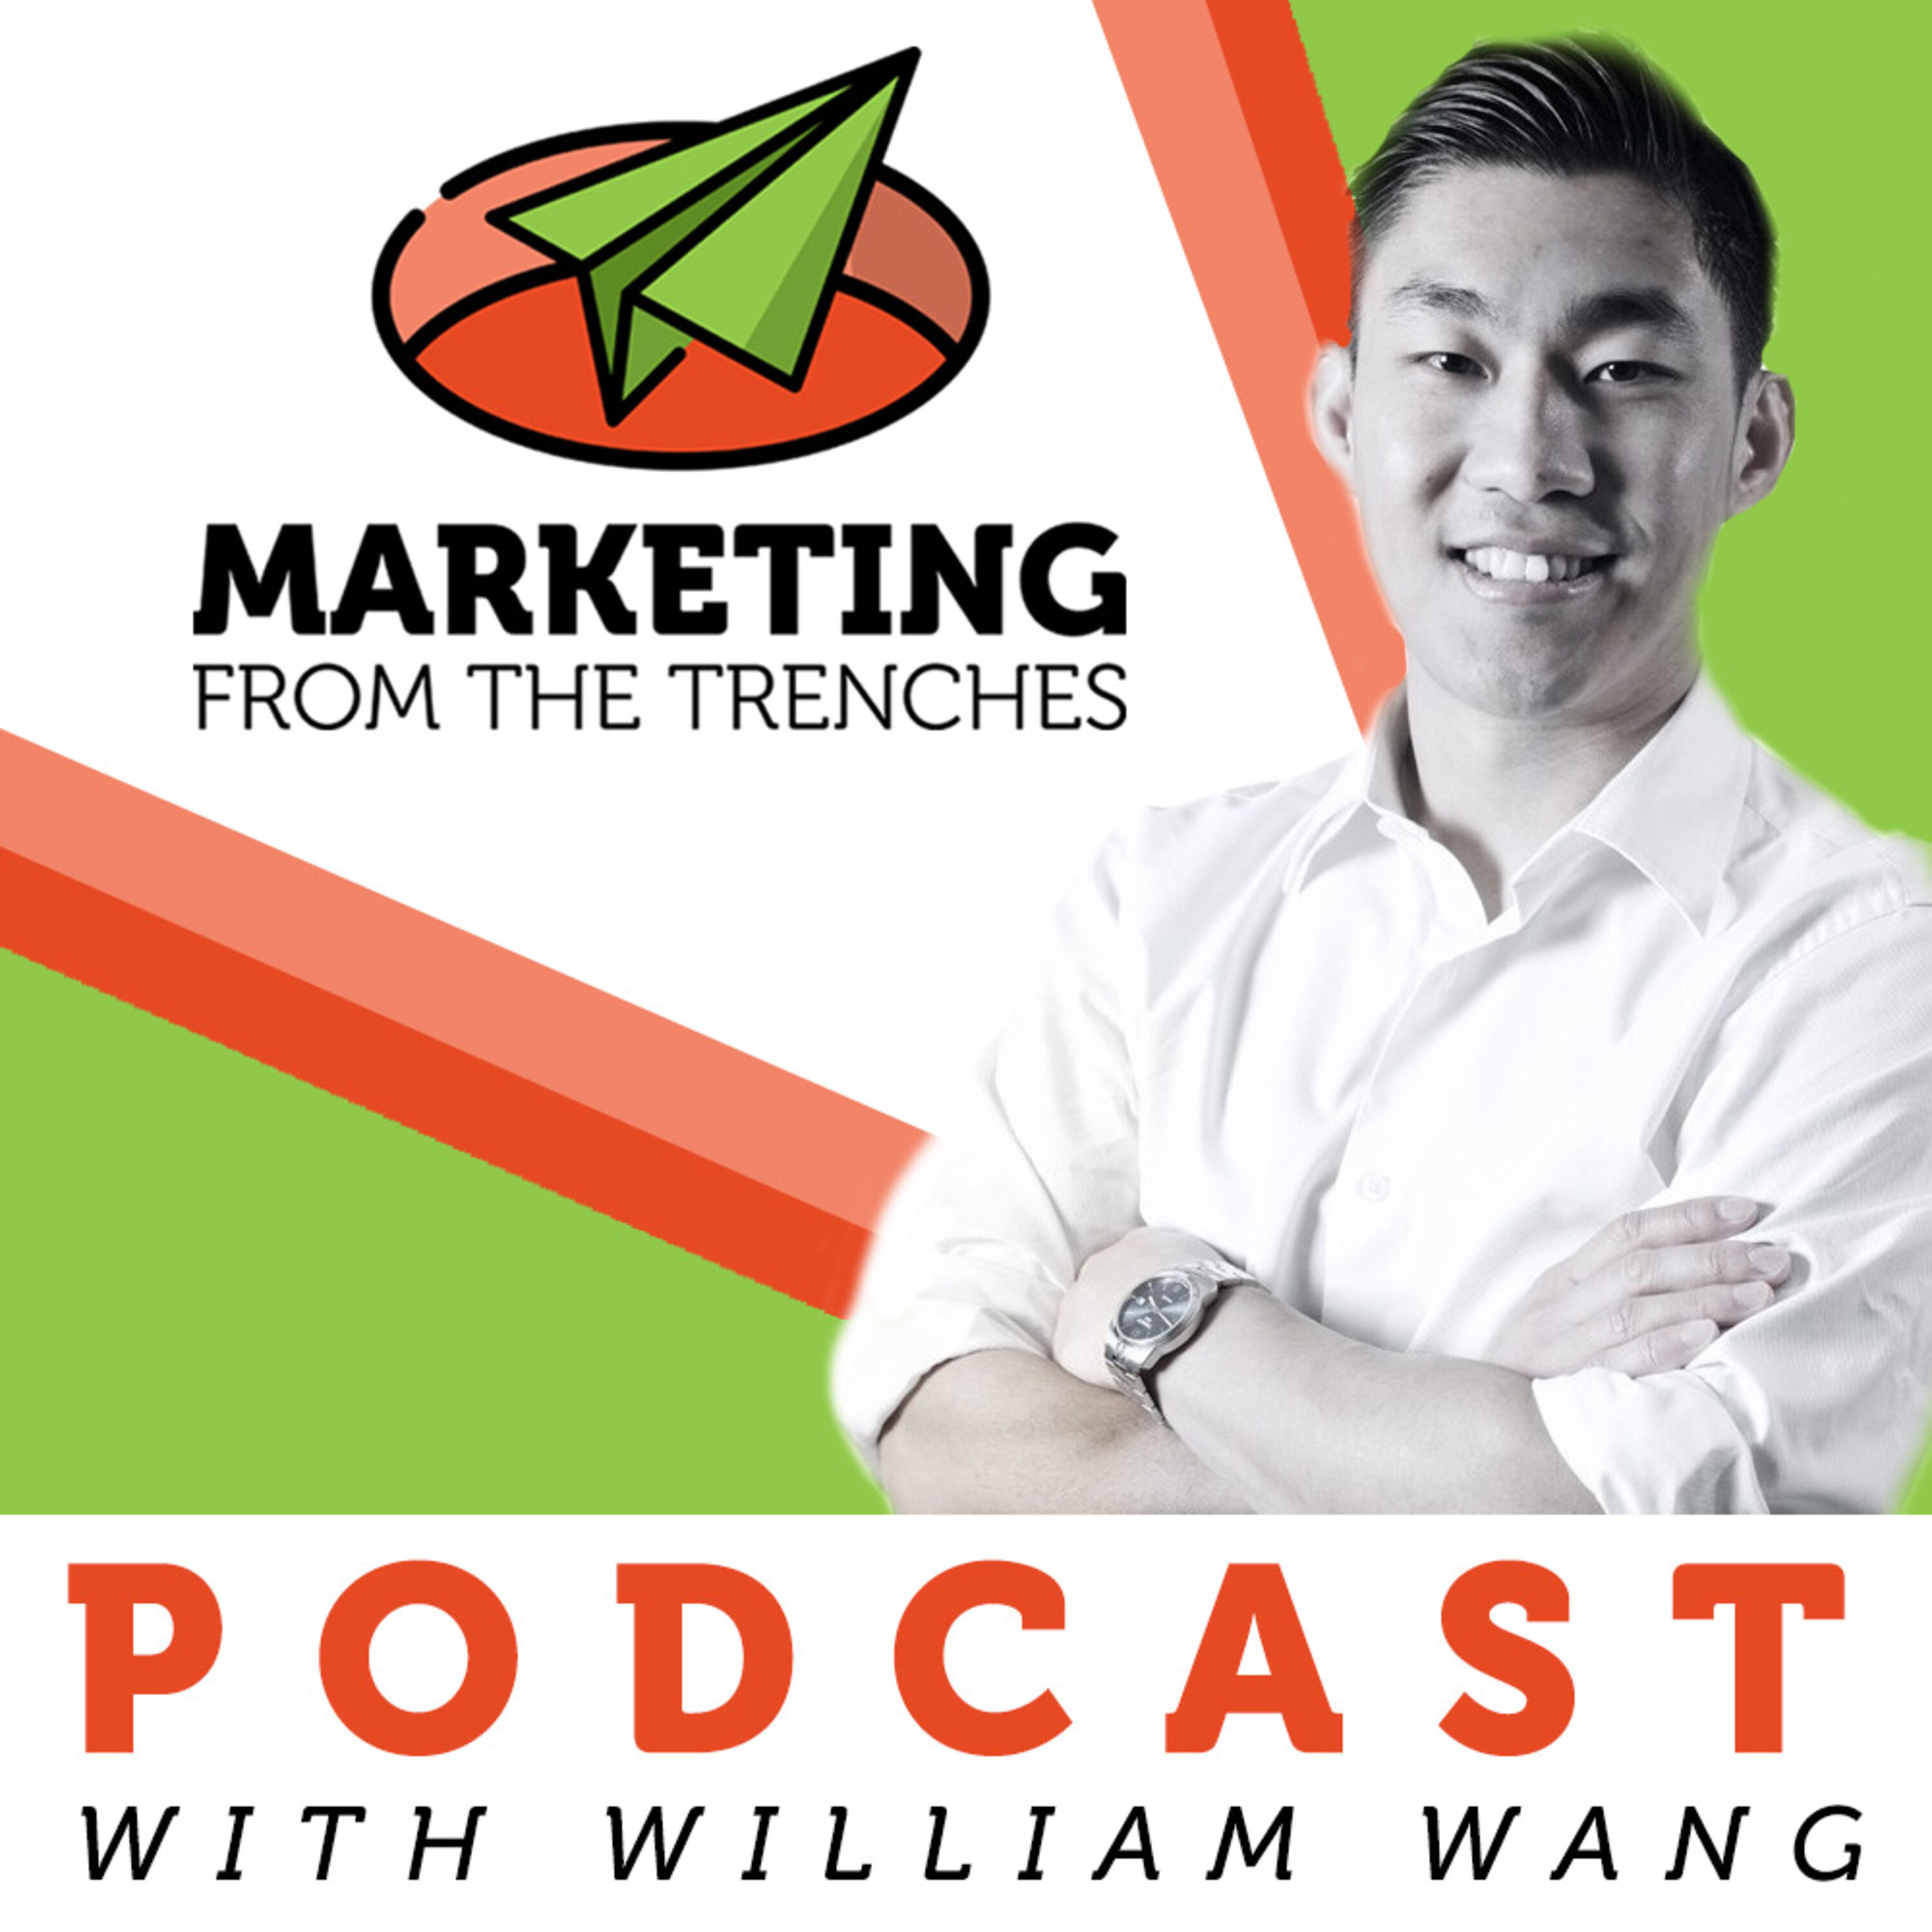 Marketing From The Trenches Podcast